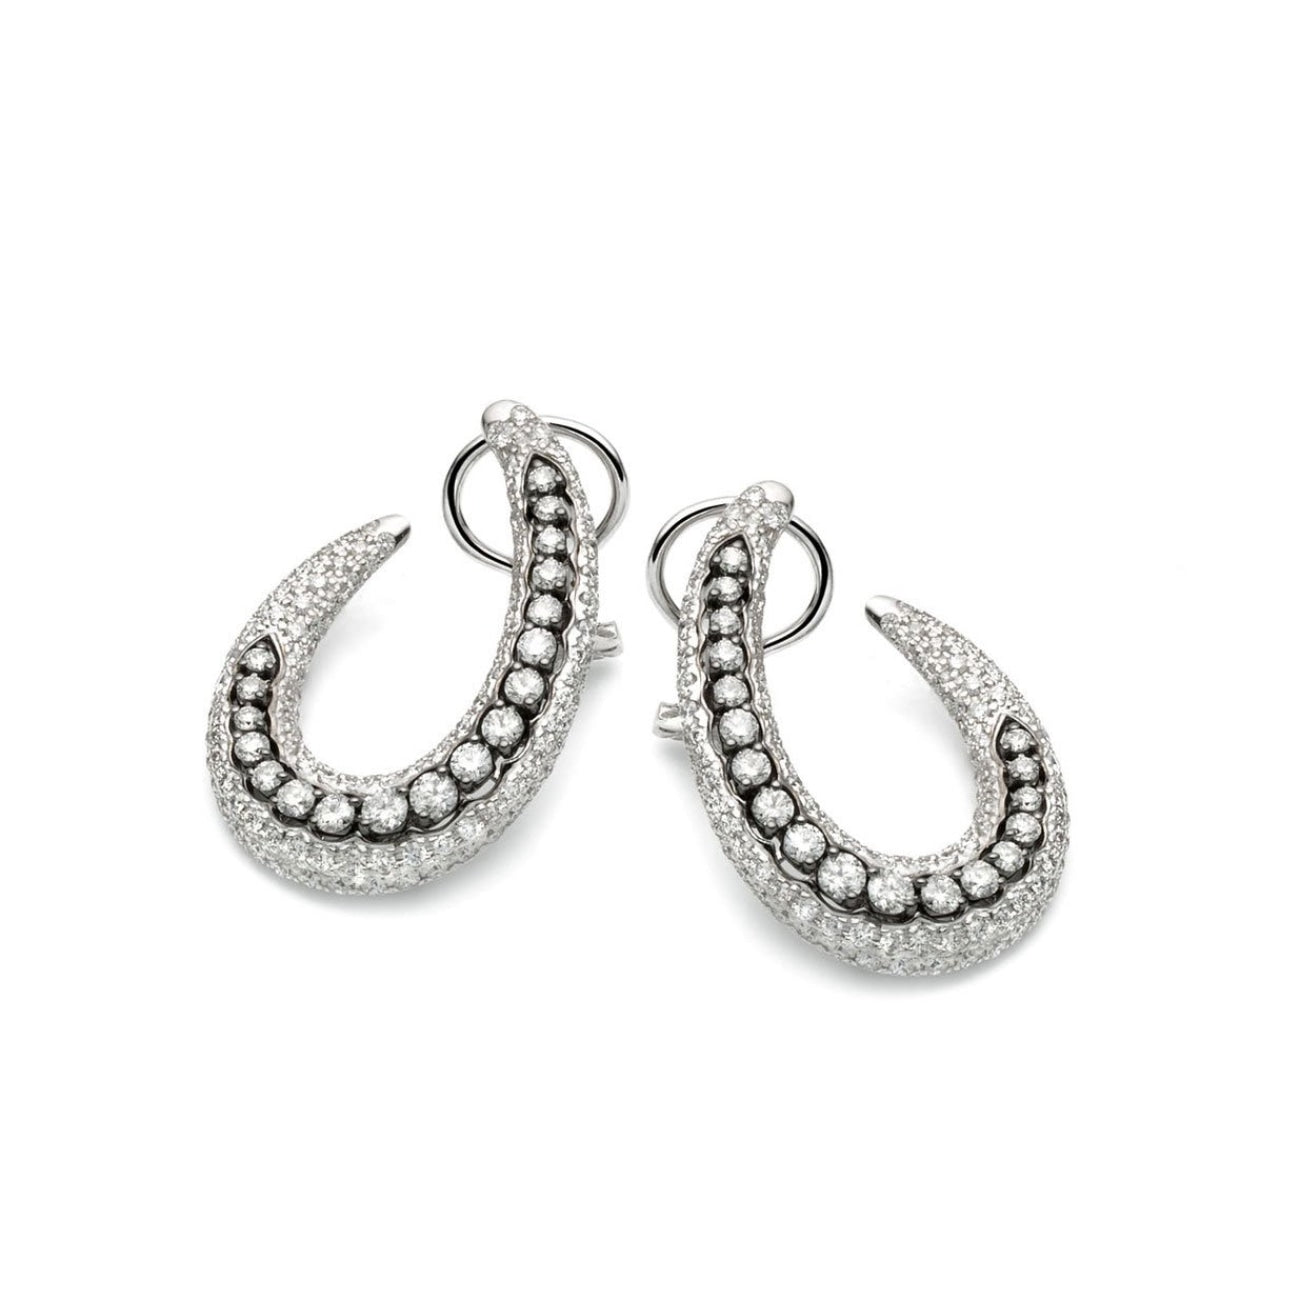 Casato Jewelry - 18kt white gold earrings with diamonds | Manfredi Jewels